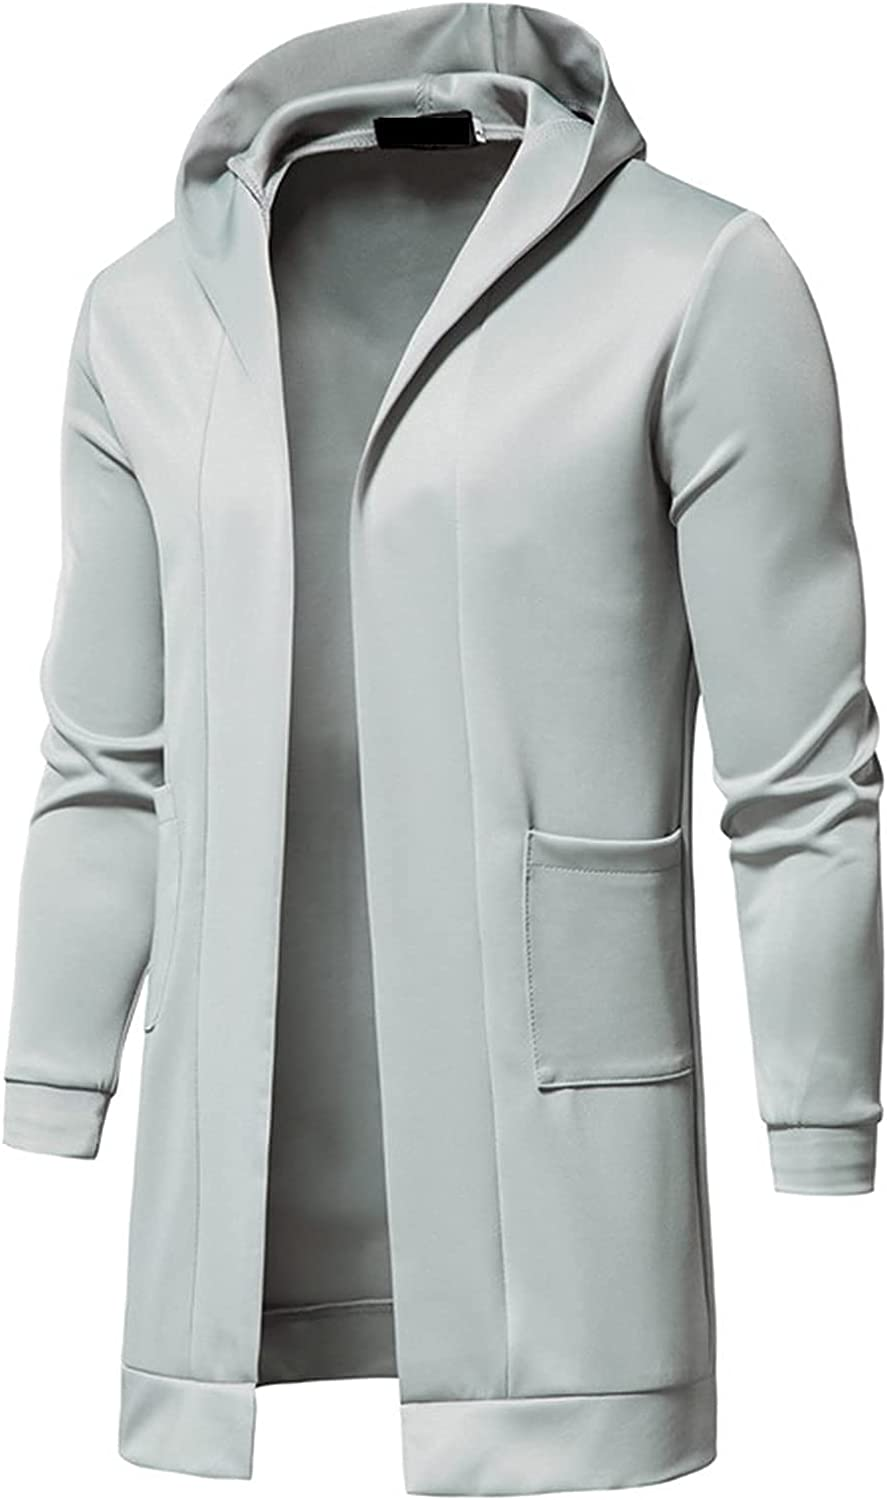 Tunic Cardigan Coat for Mens, 2021 Long Sleeve Open Front Casual Windbreaker Fashion Long Outerwear with Pockets